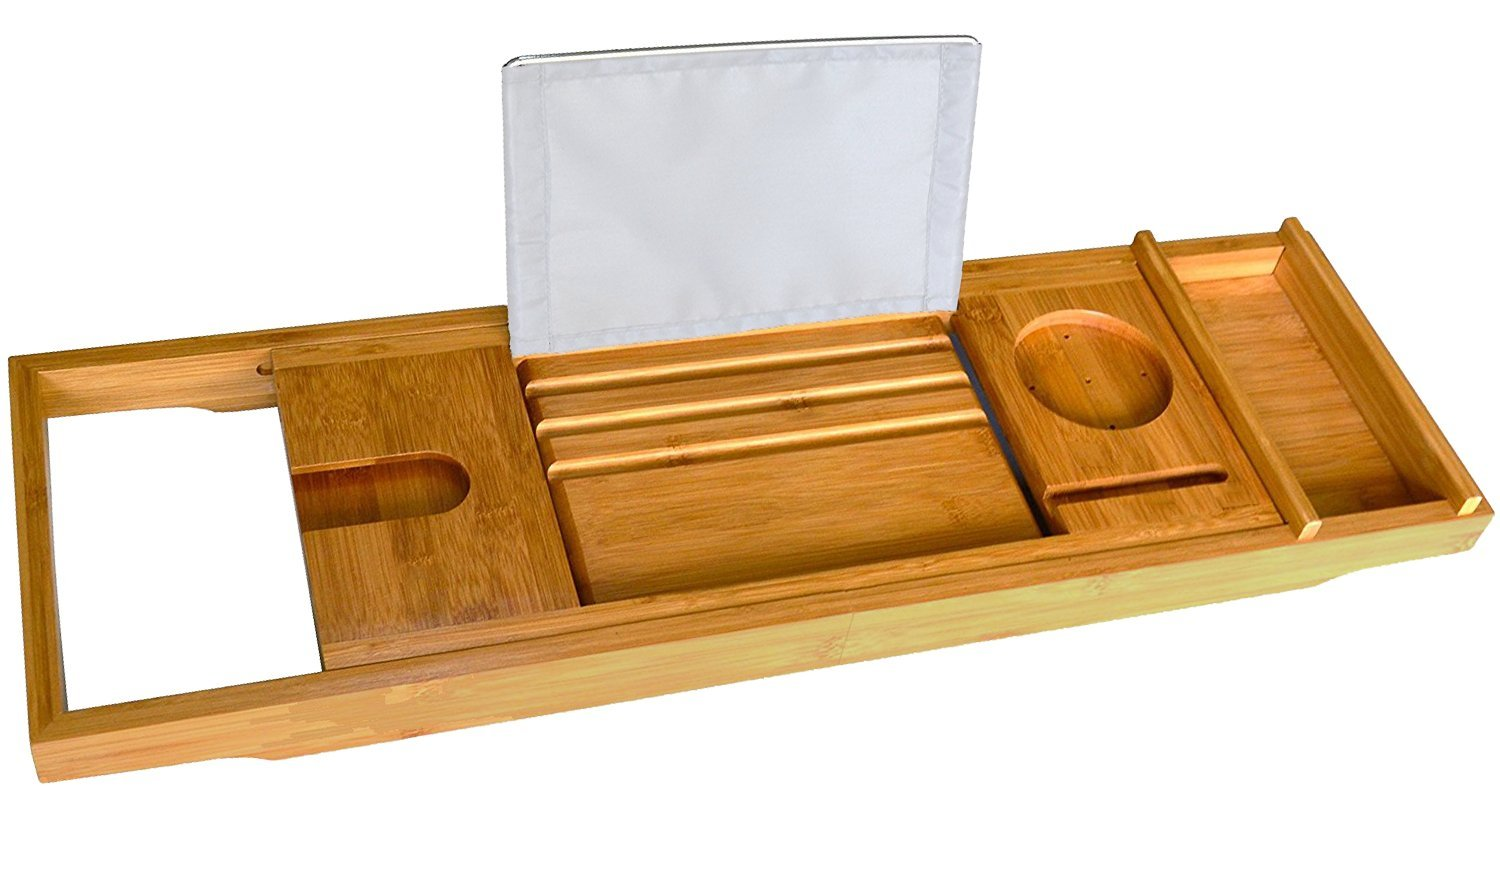 Bamboo Bath Tray - Bath Book Holder - Bathroom Bath Caddy Organizer with Rubber Grips Bathique